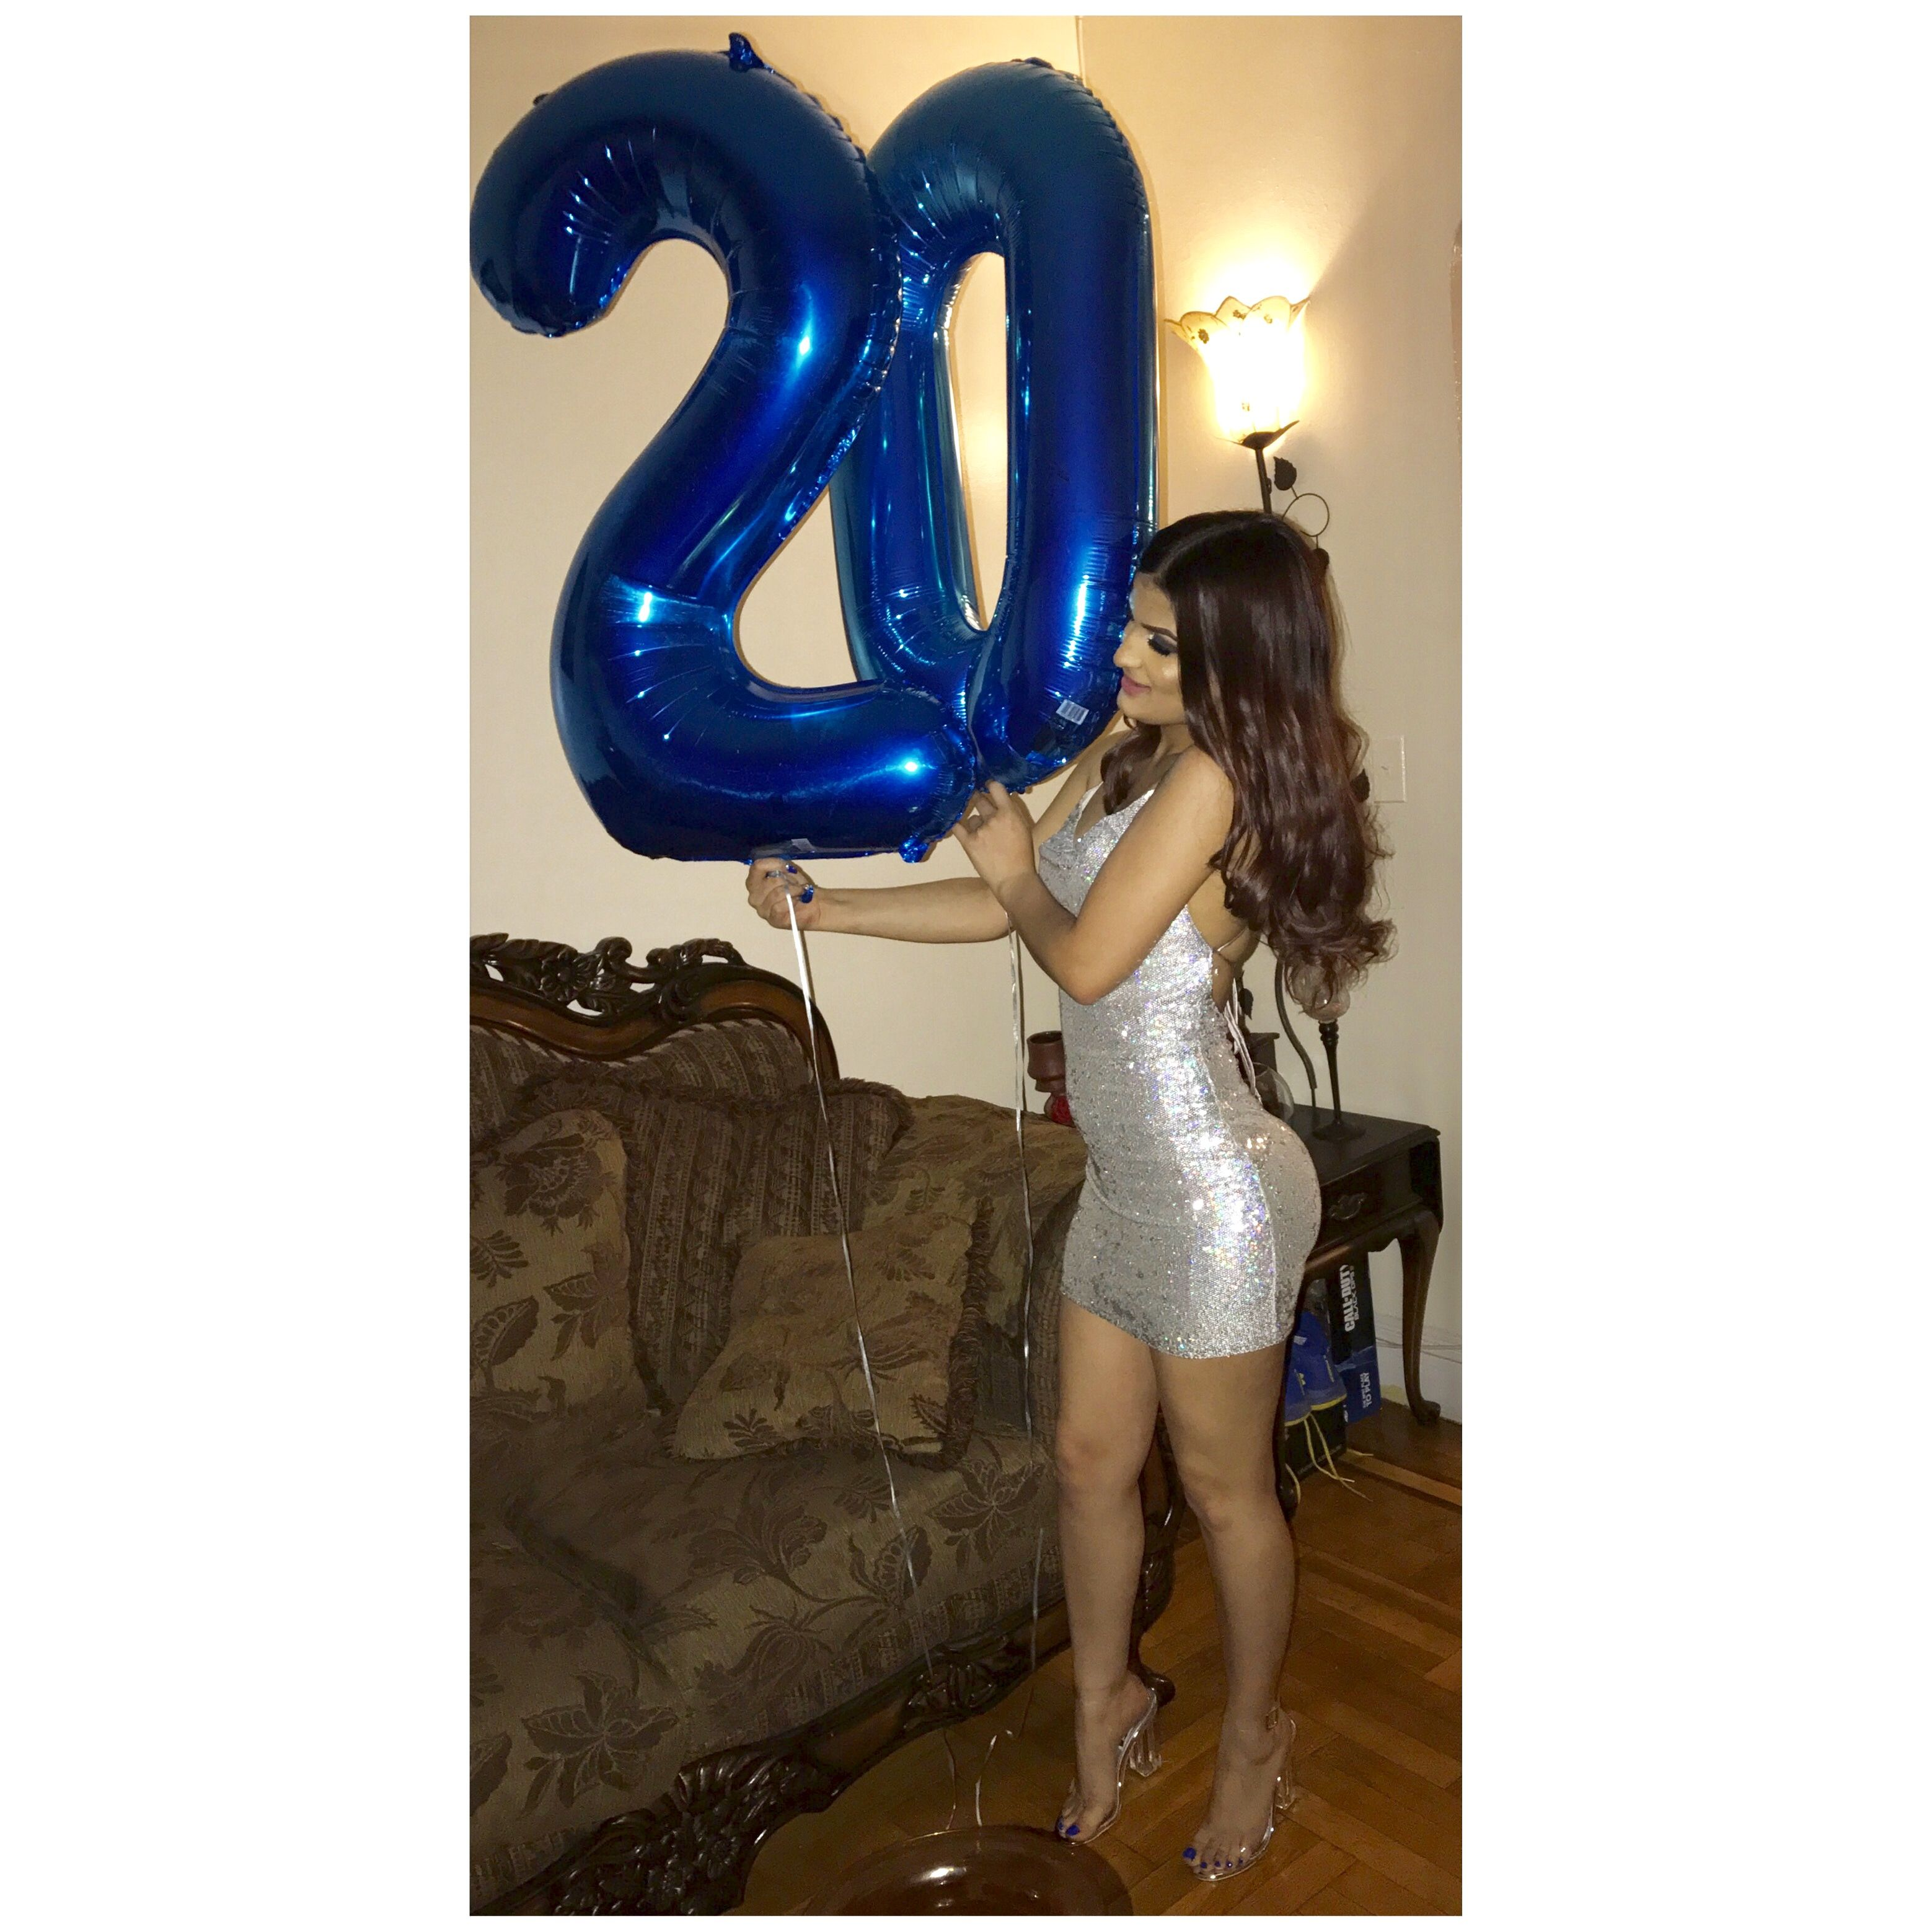 20th Birthday idea 20th birthday outfit Outfit idea 20th idea Birthday ideas  Royal blue and silver Makeup Birthdayu0027s girl #Dress #Birthday20th #Silver  ...